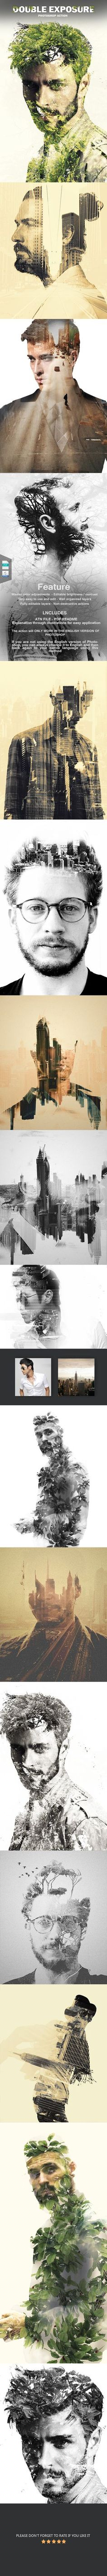 Double Exposure Photoshop Action - Photoshop Add-ons